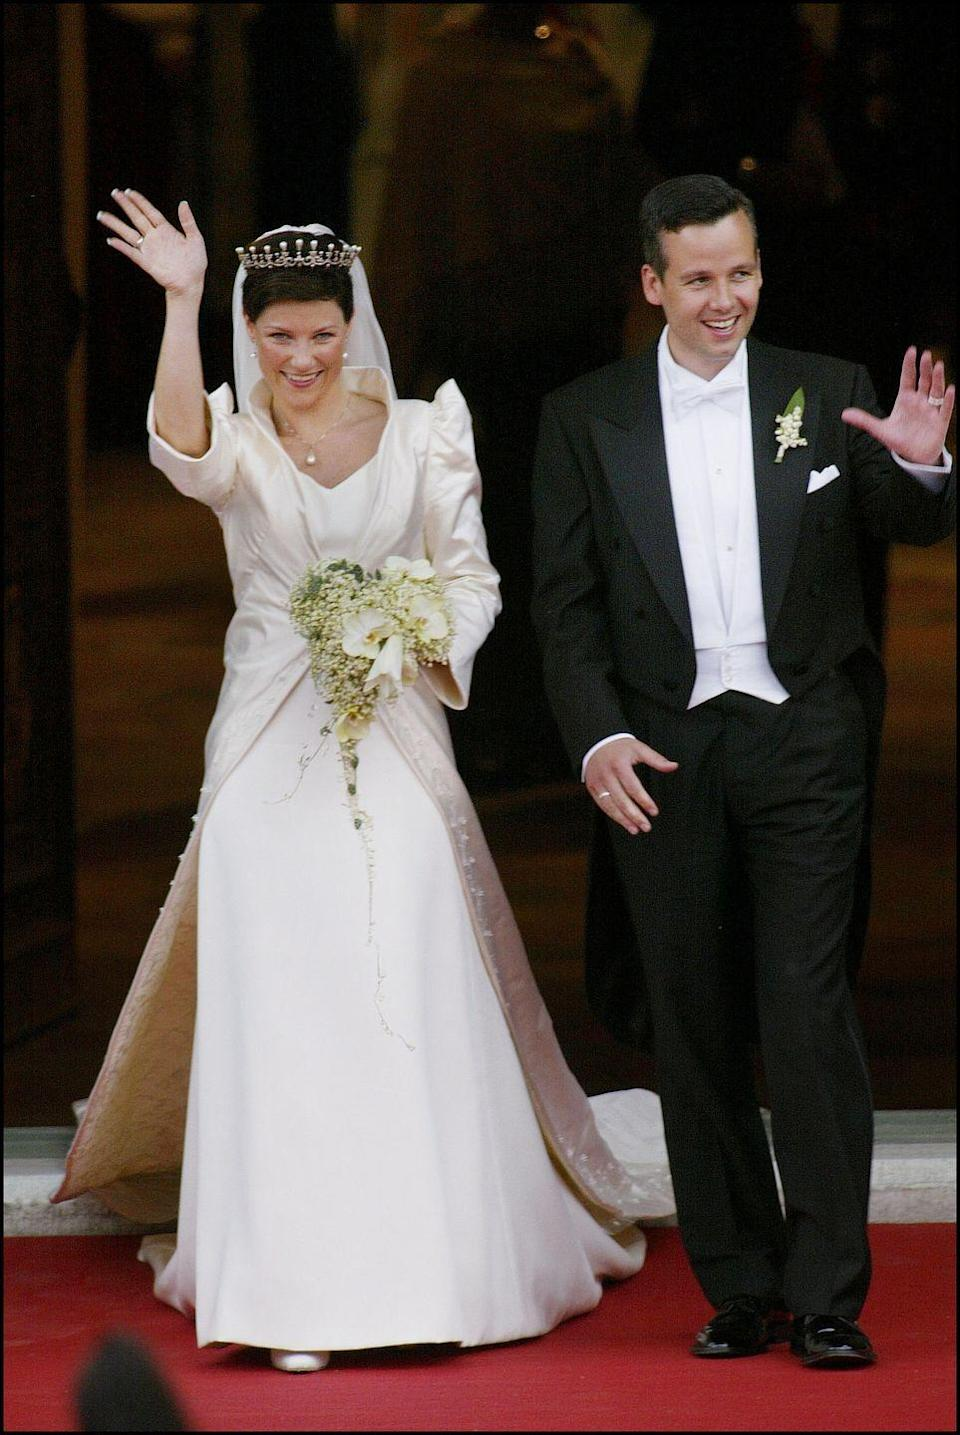 <p>Princess Martha-Louise and Ari Behn of Norway were married in Trondheim, Norway on May 24, 2002. Princess Martha-Louise's two-piece gown consisted of a Swarovski crystal-embellished coat with trumpet sleeves and a 9-foot train. The dress underneath was a simple, sleeveless white silk crêpe.</p>